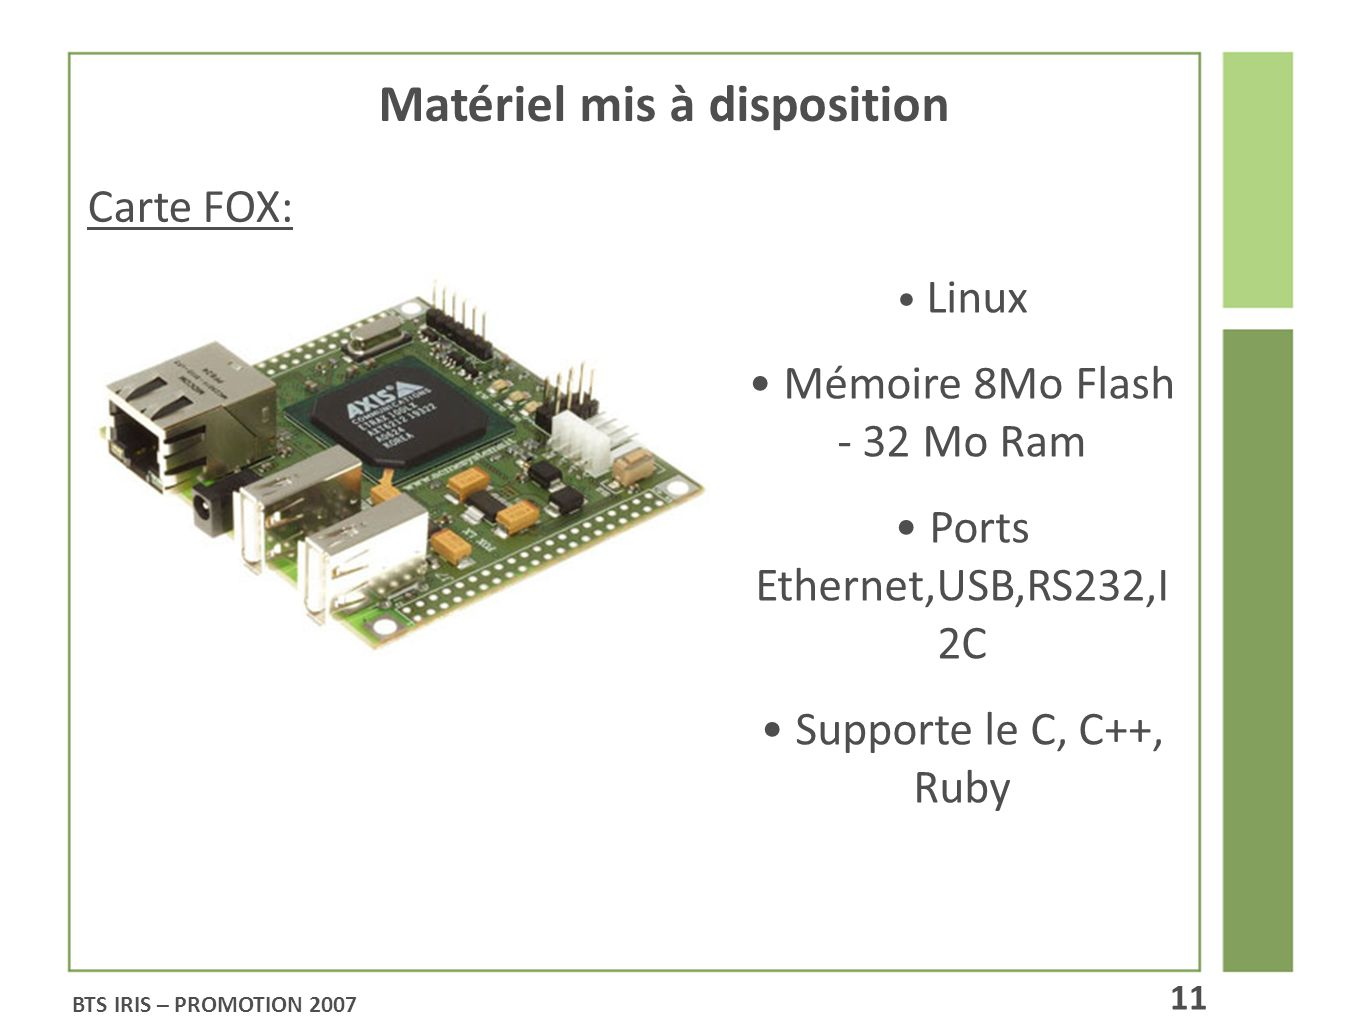 Matériel mis à disposition Carte FOX: Linux Mémoire 8Mo Flash - 32 Mo Ram Ports Ethernet,USB,RS232,I 2C Supporte le C, C++, Ruby BTS IRIS – PROMOTION 2007 11